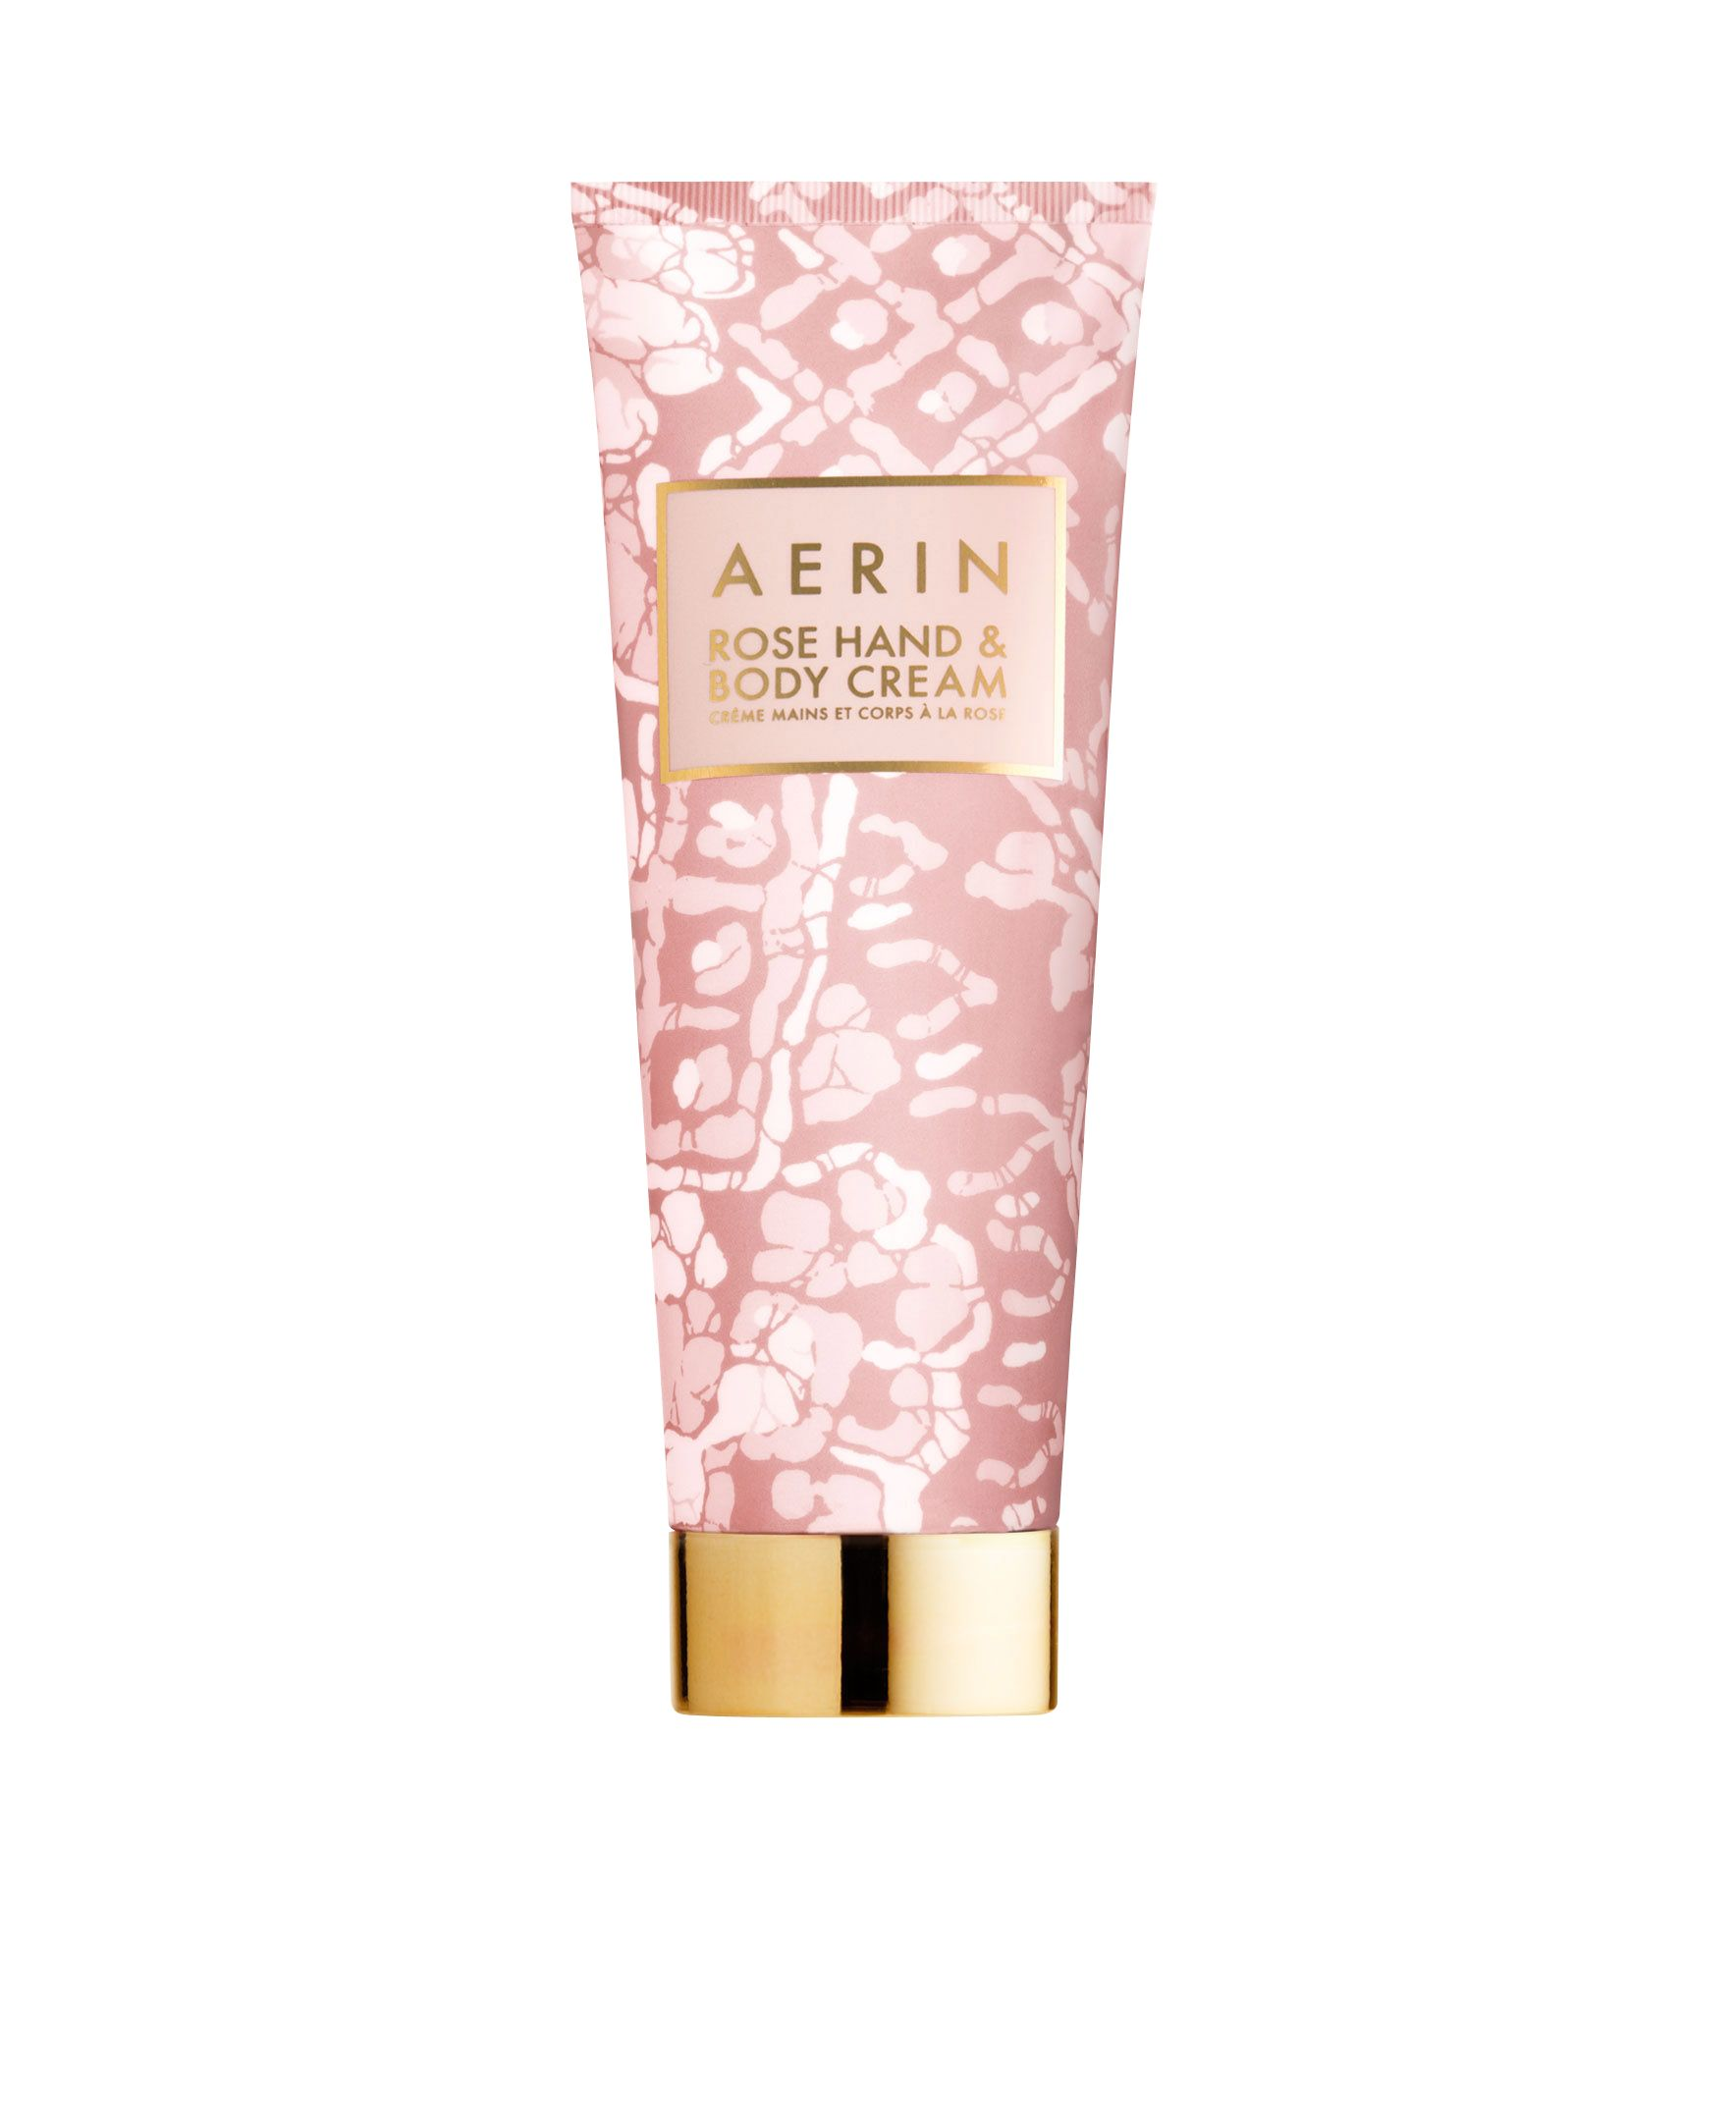 AERIN AERIN Rose Hand & Body Cream, 250ml